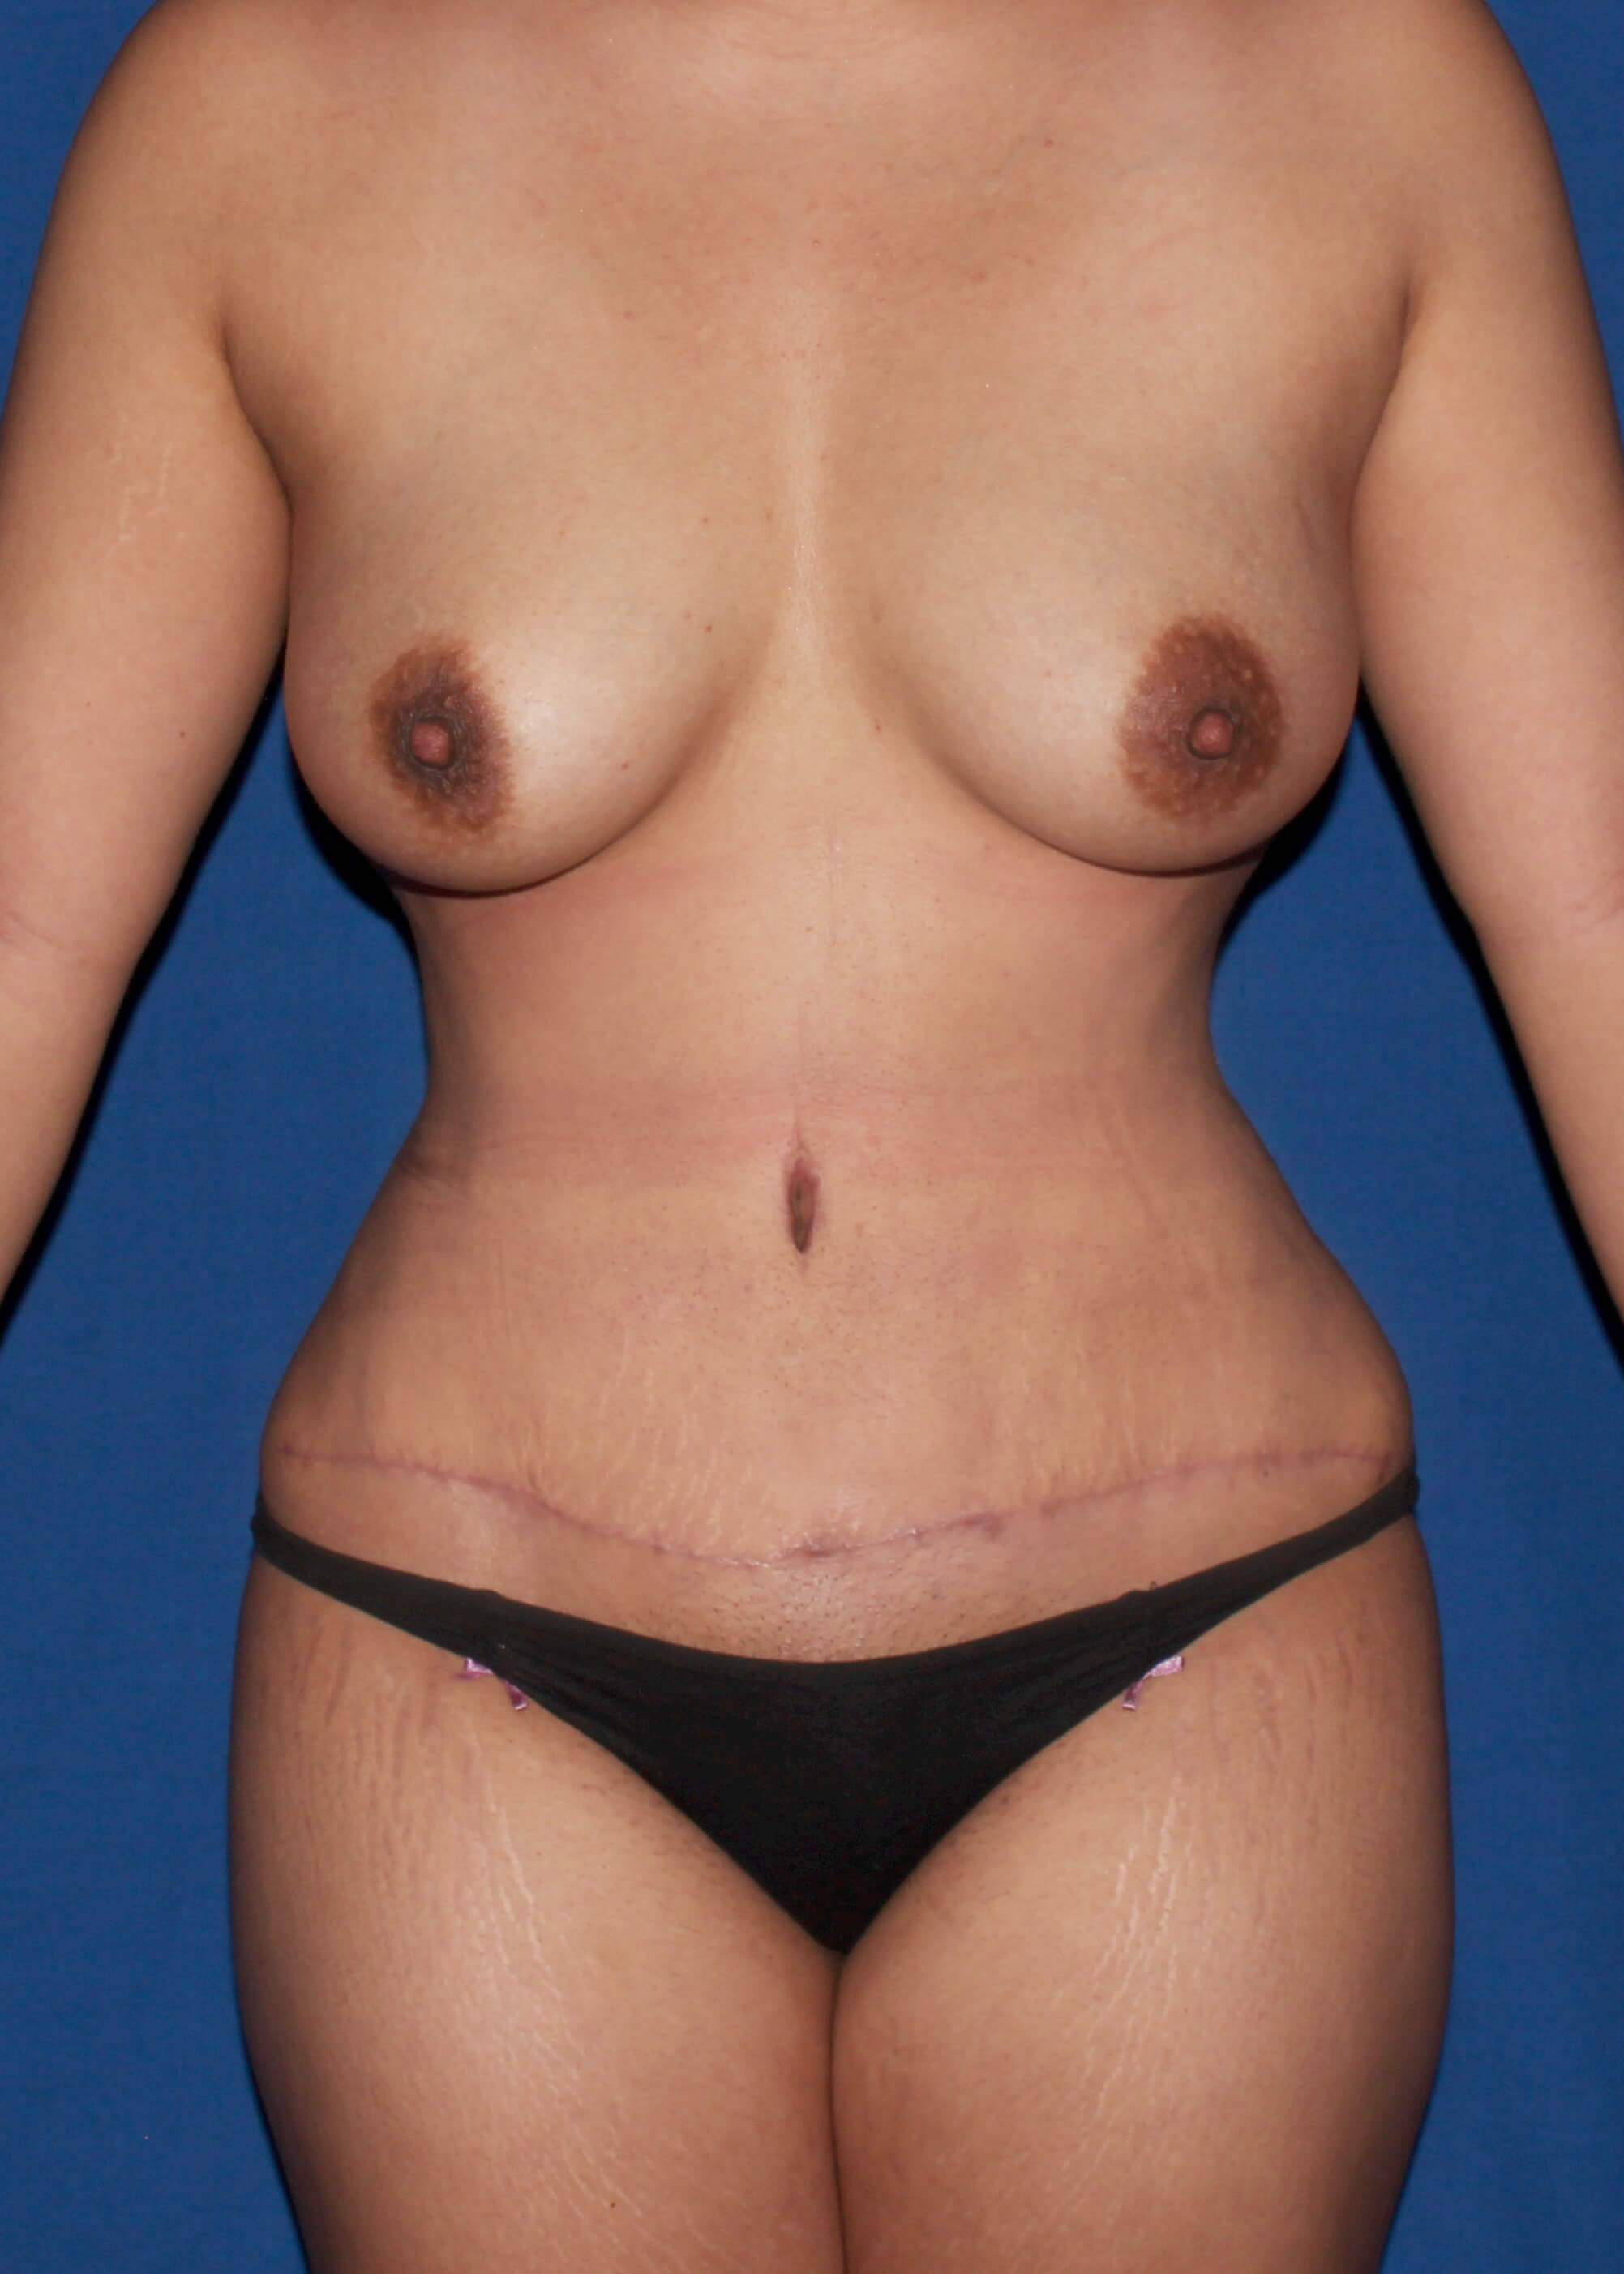 After Liposuction - scottsdale mommy makeover AZ